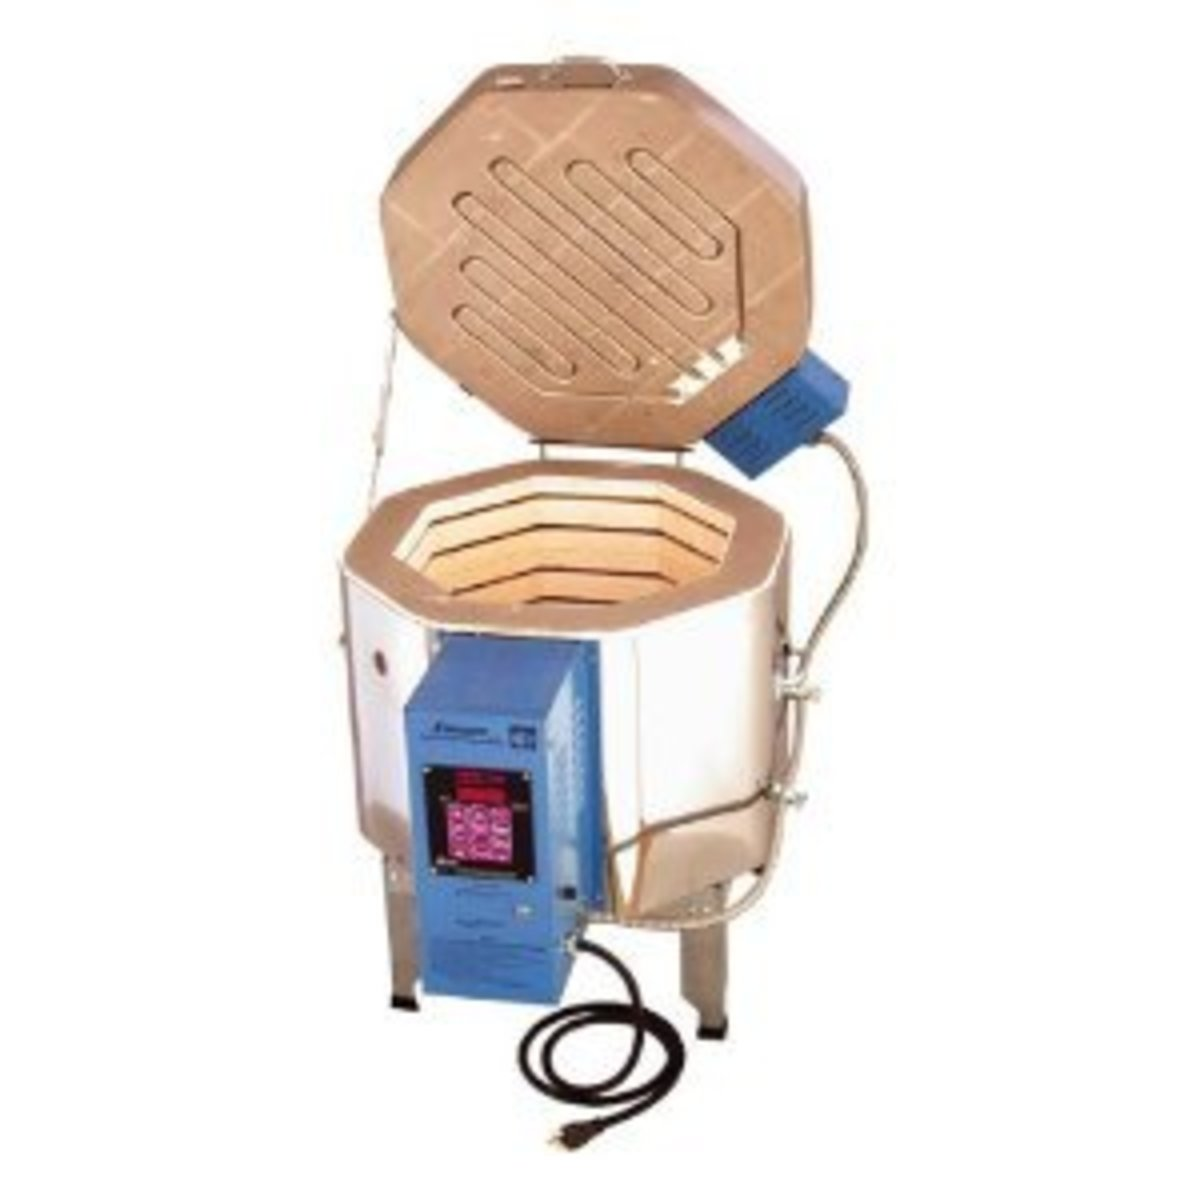 A small top loading kiln - ideal for a beginner in pottery and ceramic. Image Credit: Amazon.com